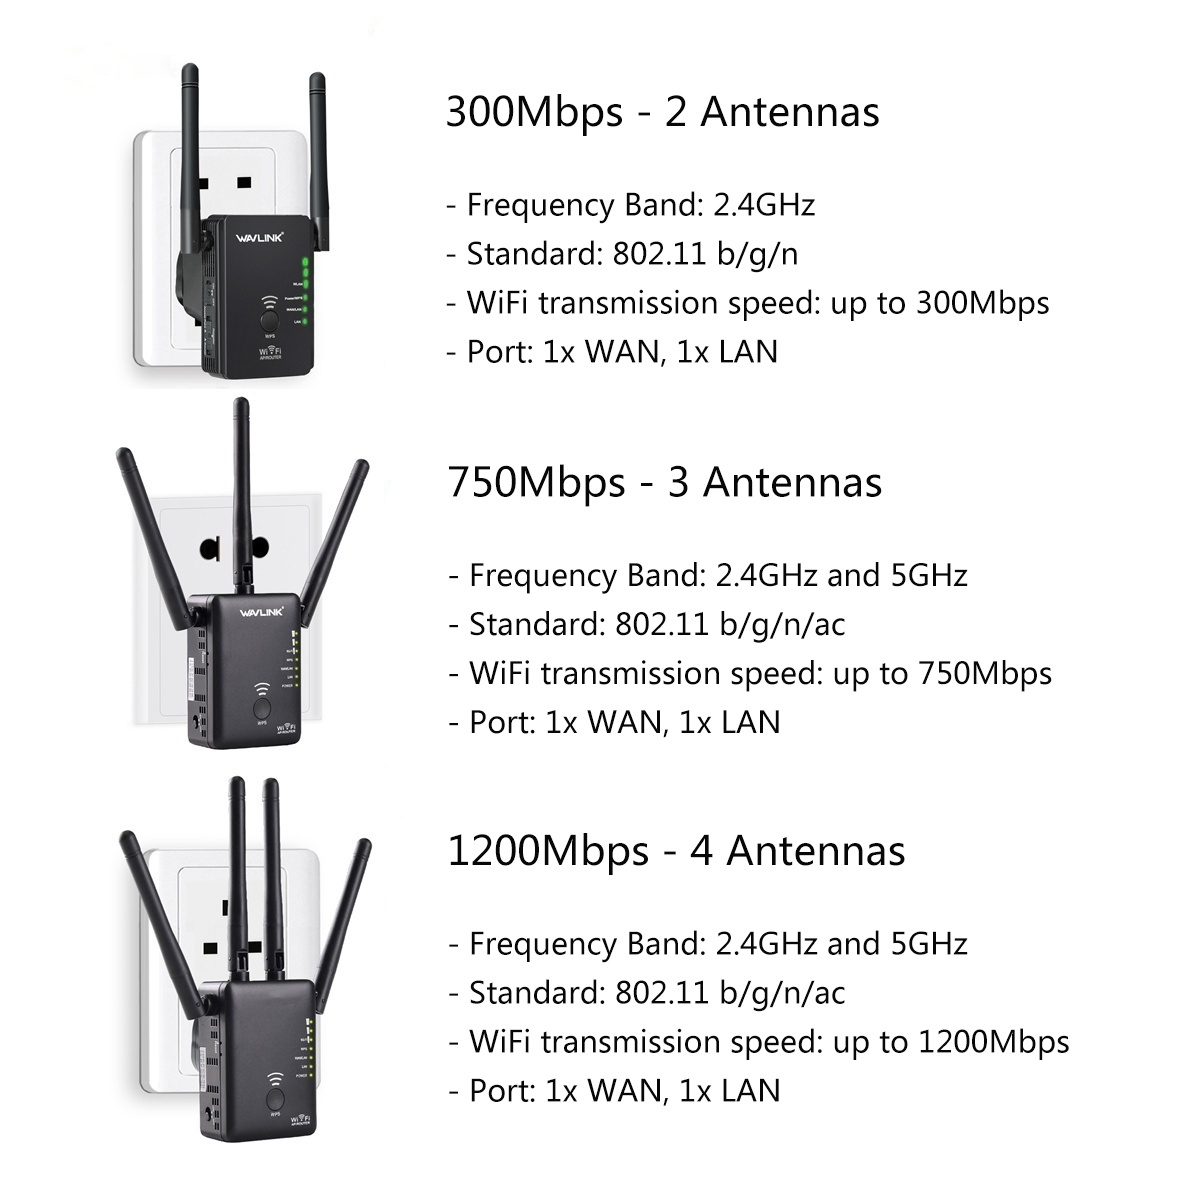 WiFi Extender 300M/750M/1200M WiFi Repeater/Router Wifi Access Point Home WiFi Signal Booster Amplifier 2/3/4 Antennas